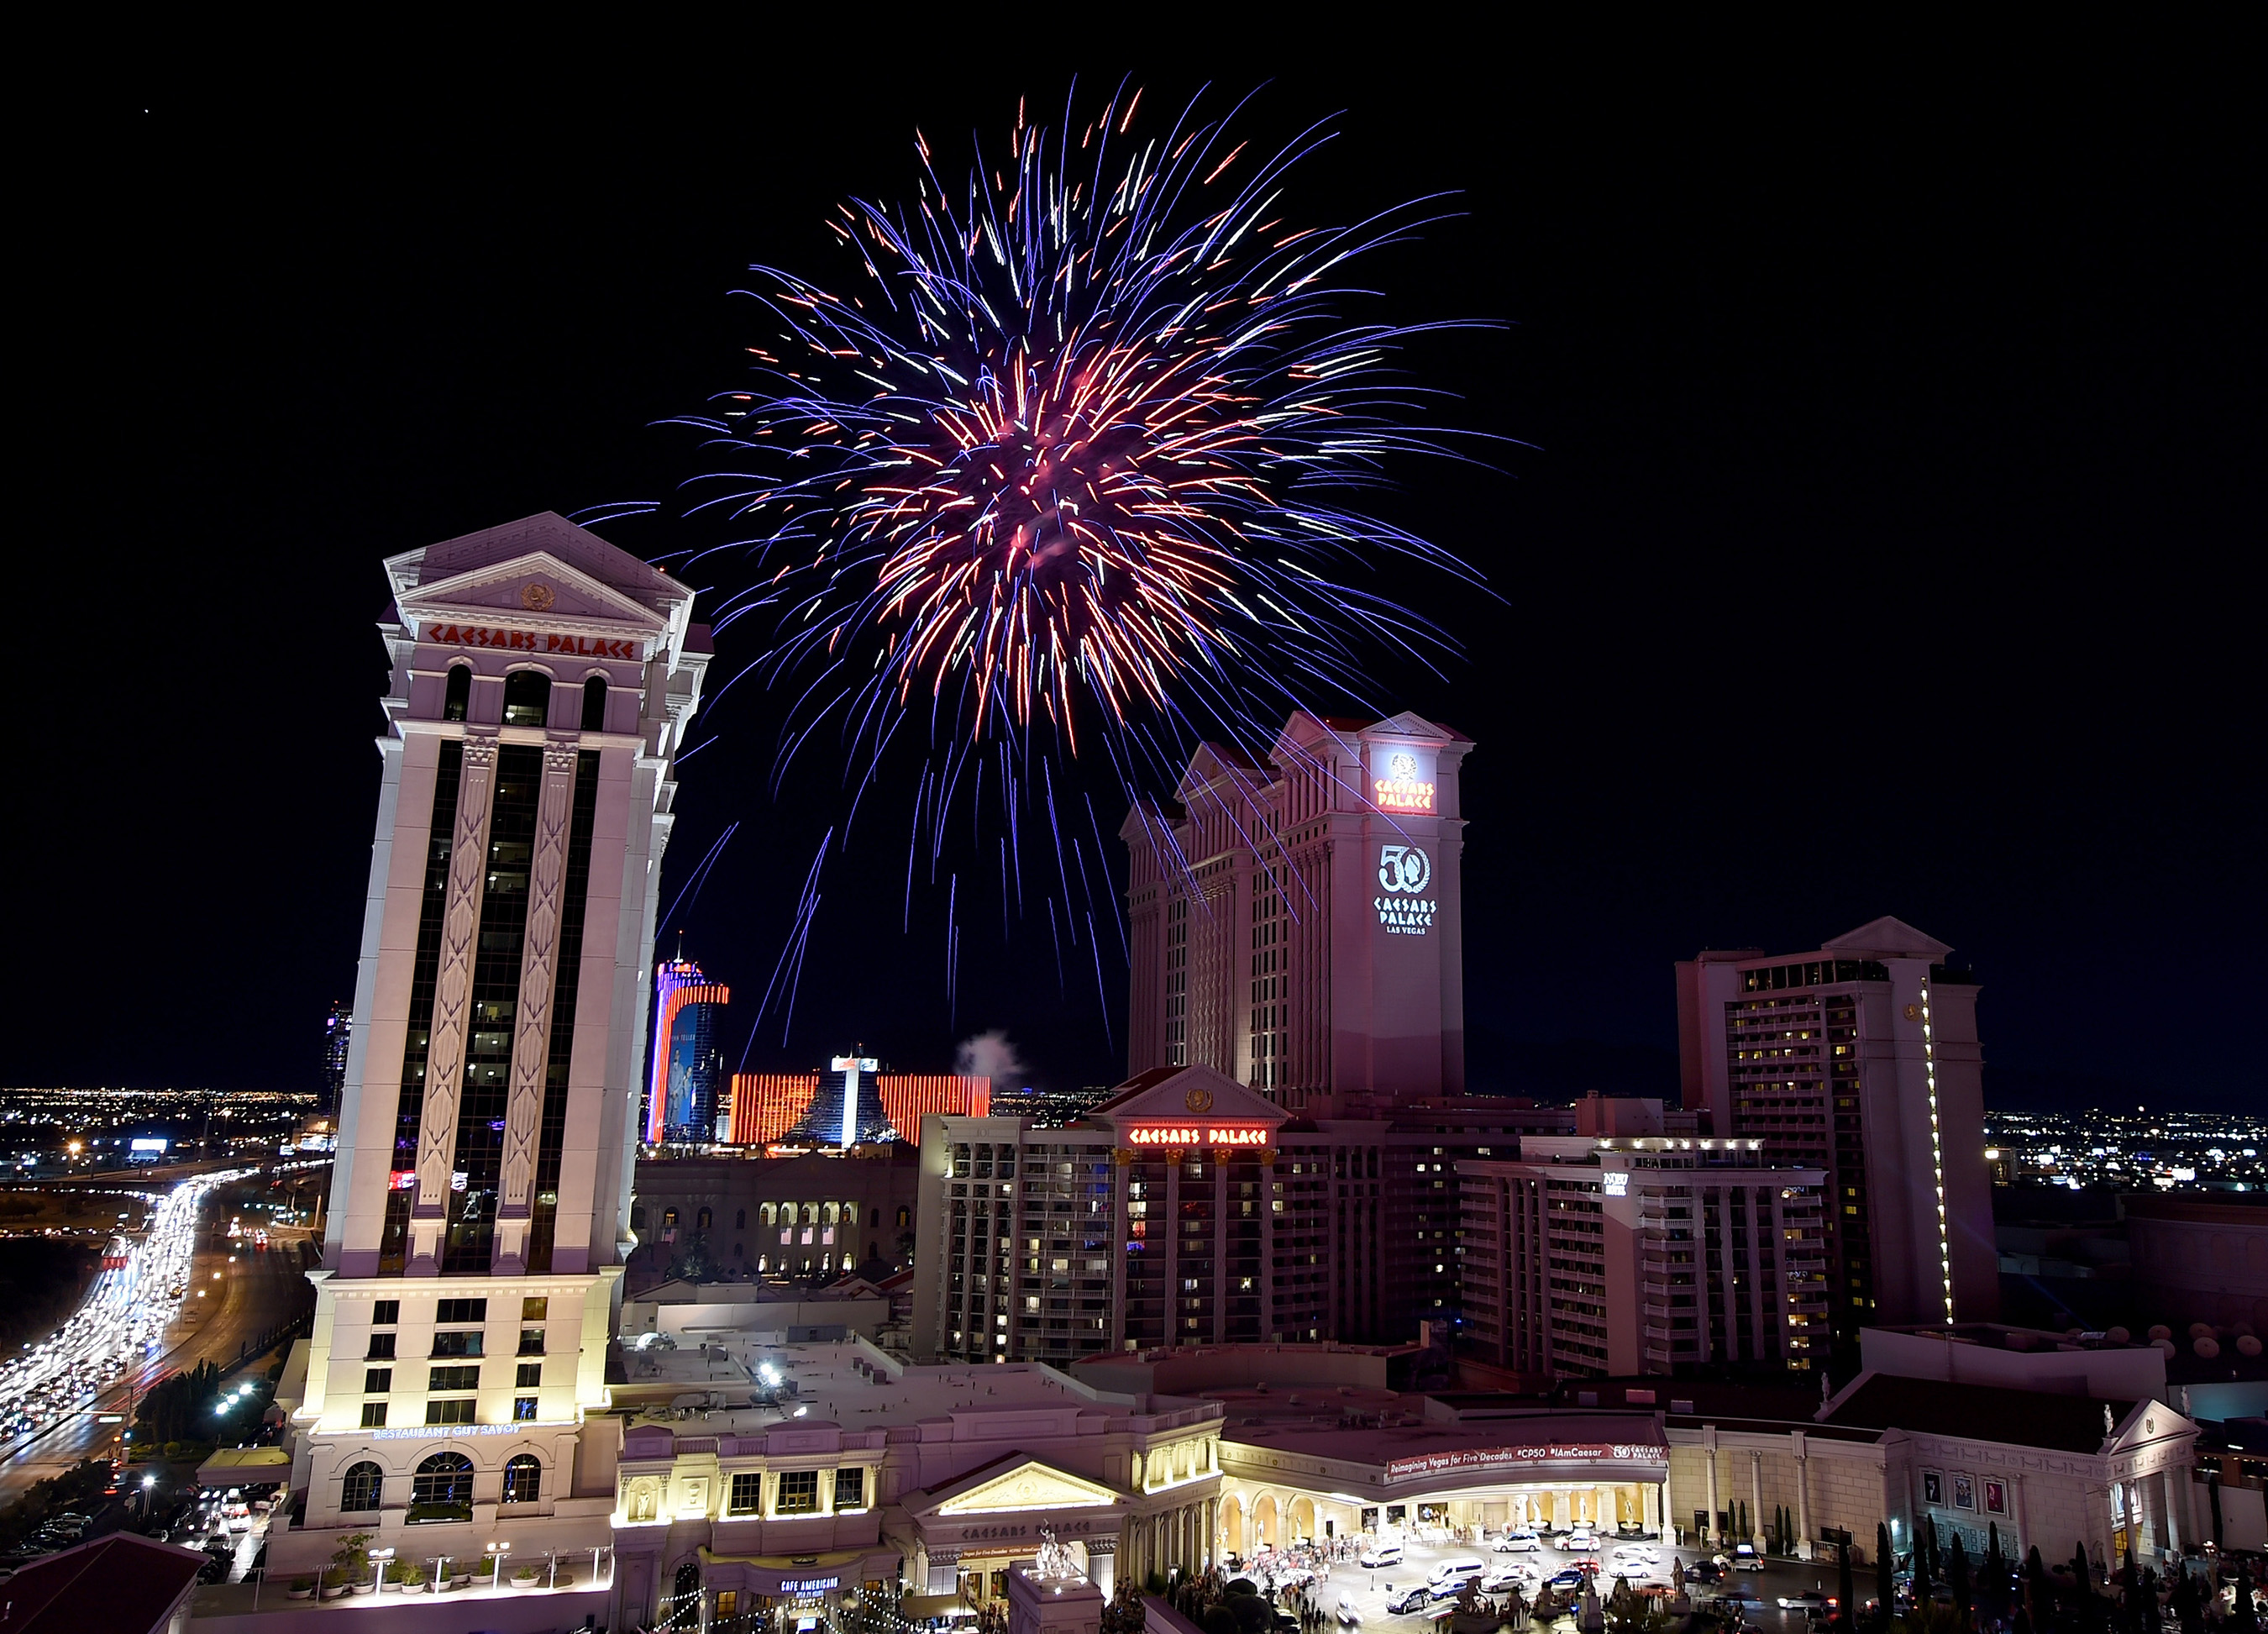 The 50th Anniversary celebration of Caesars Palace continues with an Independence Day Weekend fireworks extravaganza. Photo Credit: Ethan Miller/Getty Images